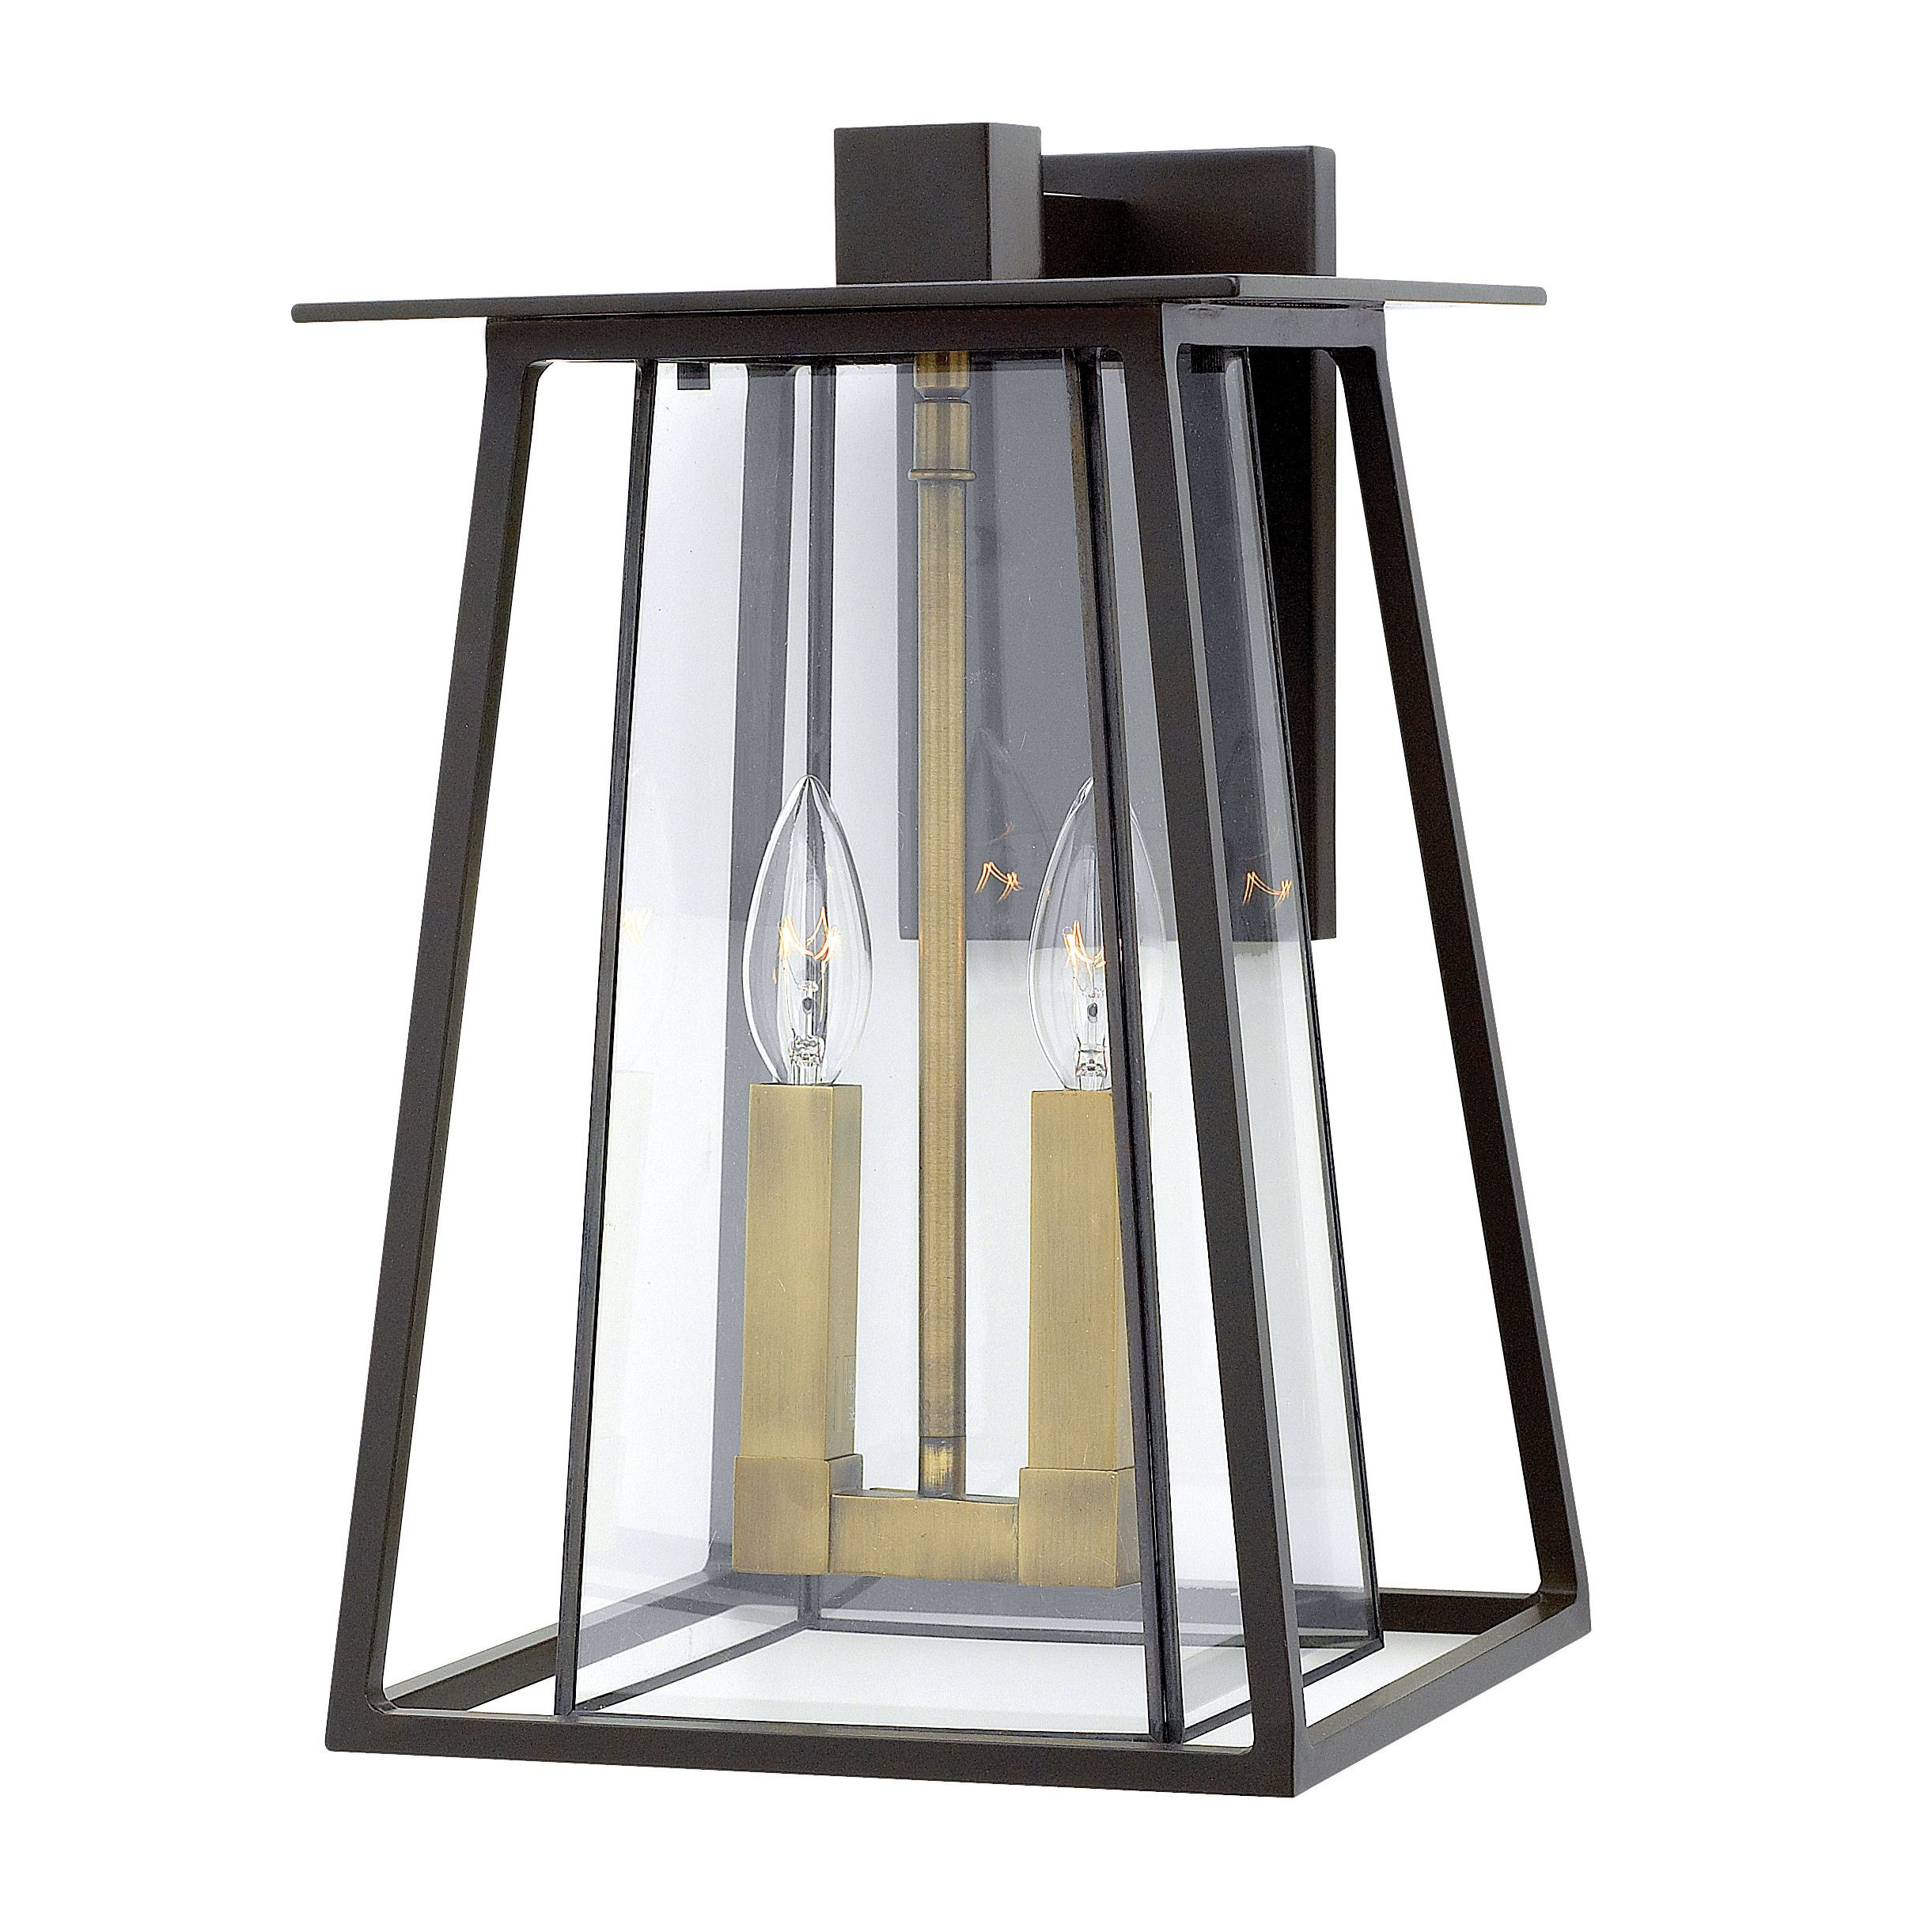 wall matters one determine to sconces how for outdoor fixture day proportion featured house fixtures modern penfield lantern size light sconce